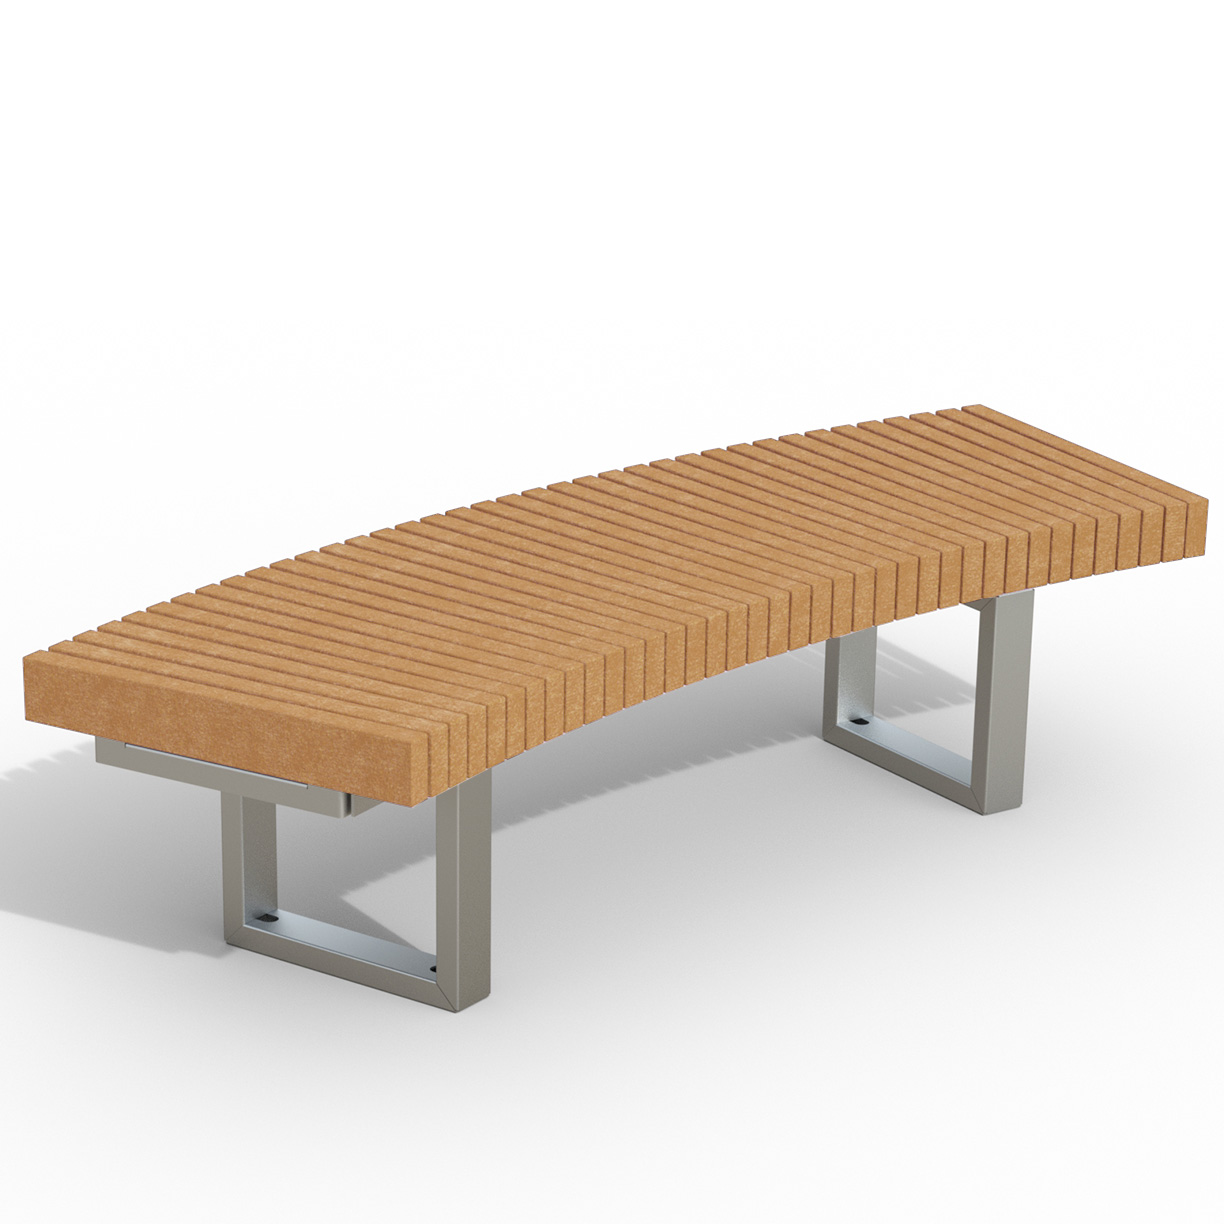 INF24C1230R  Infinity Collection 12' Radius / 30 Degree Curved Recycled Plastic Bench